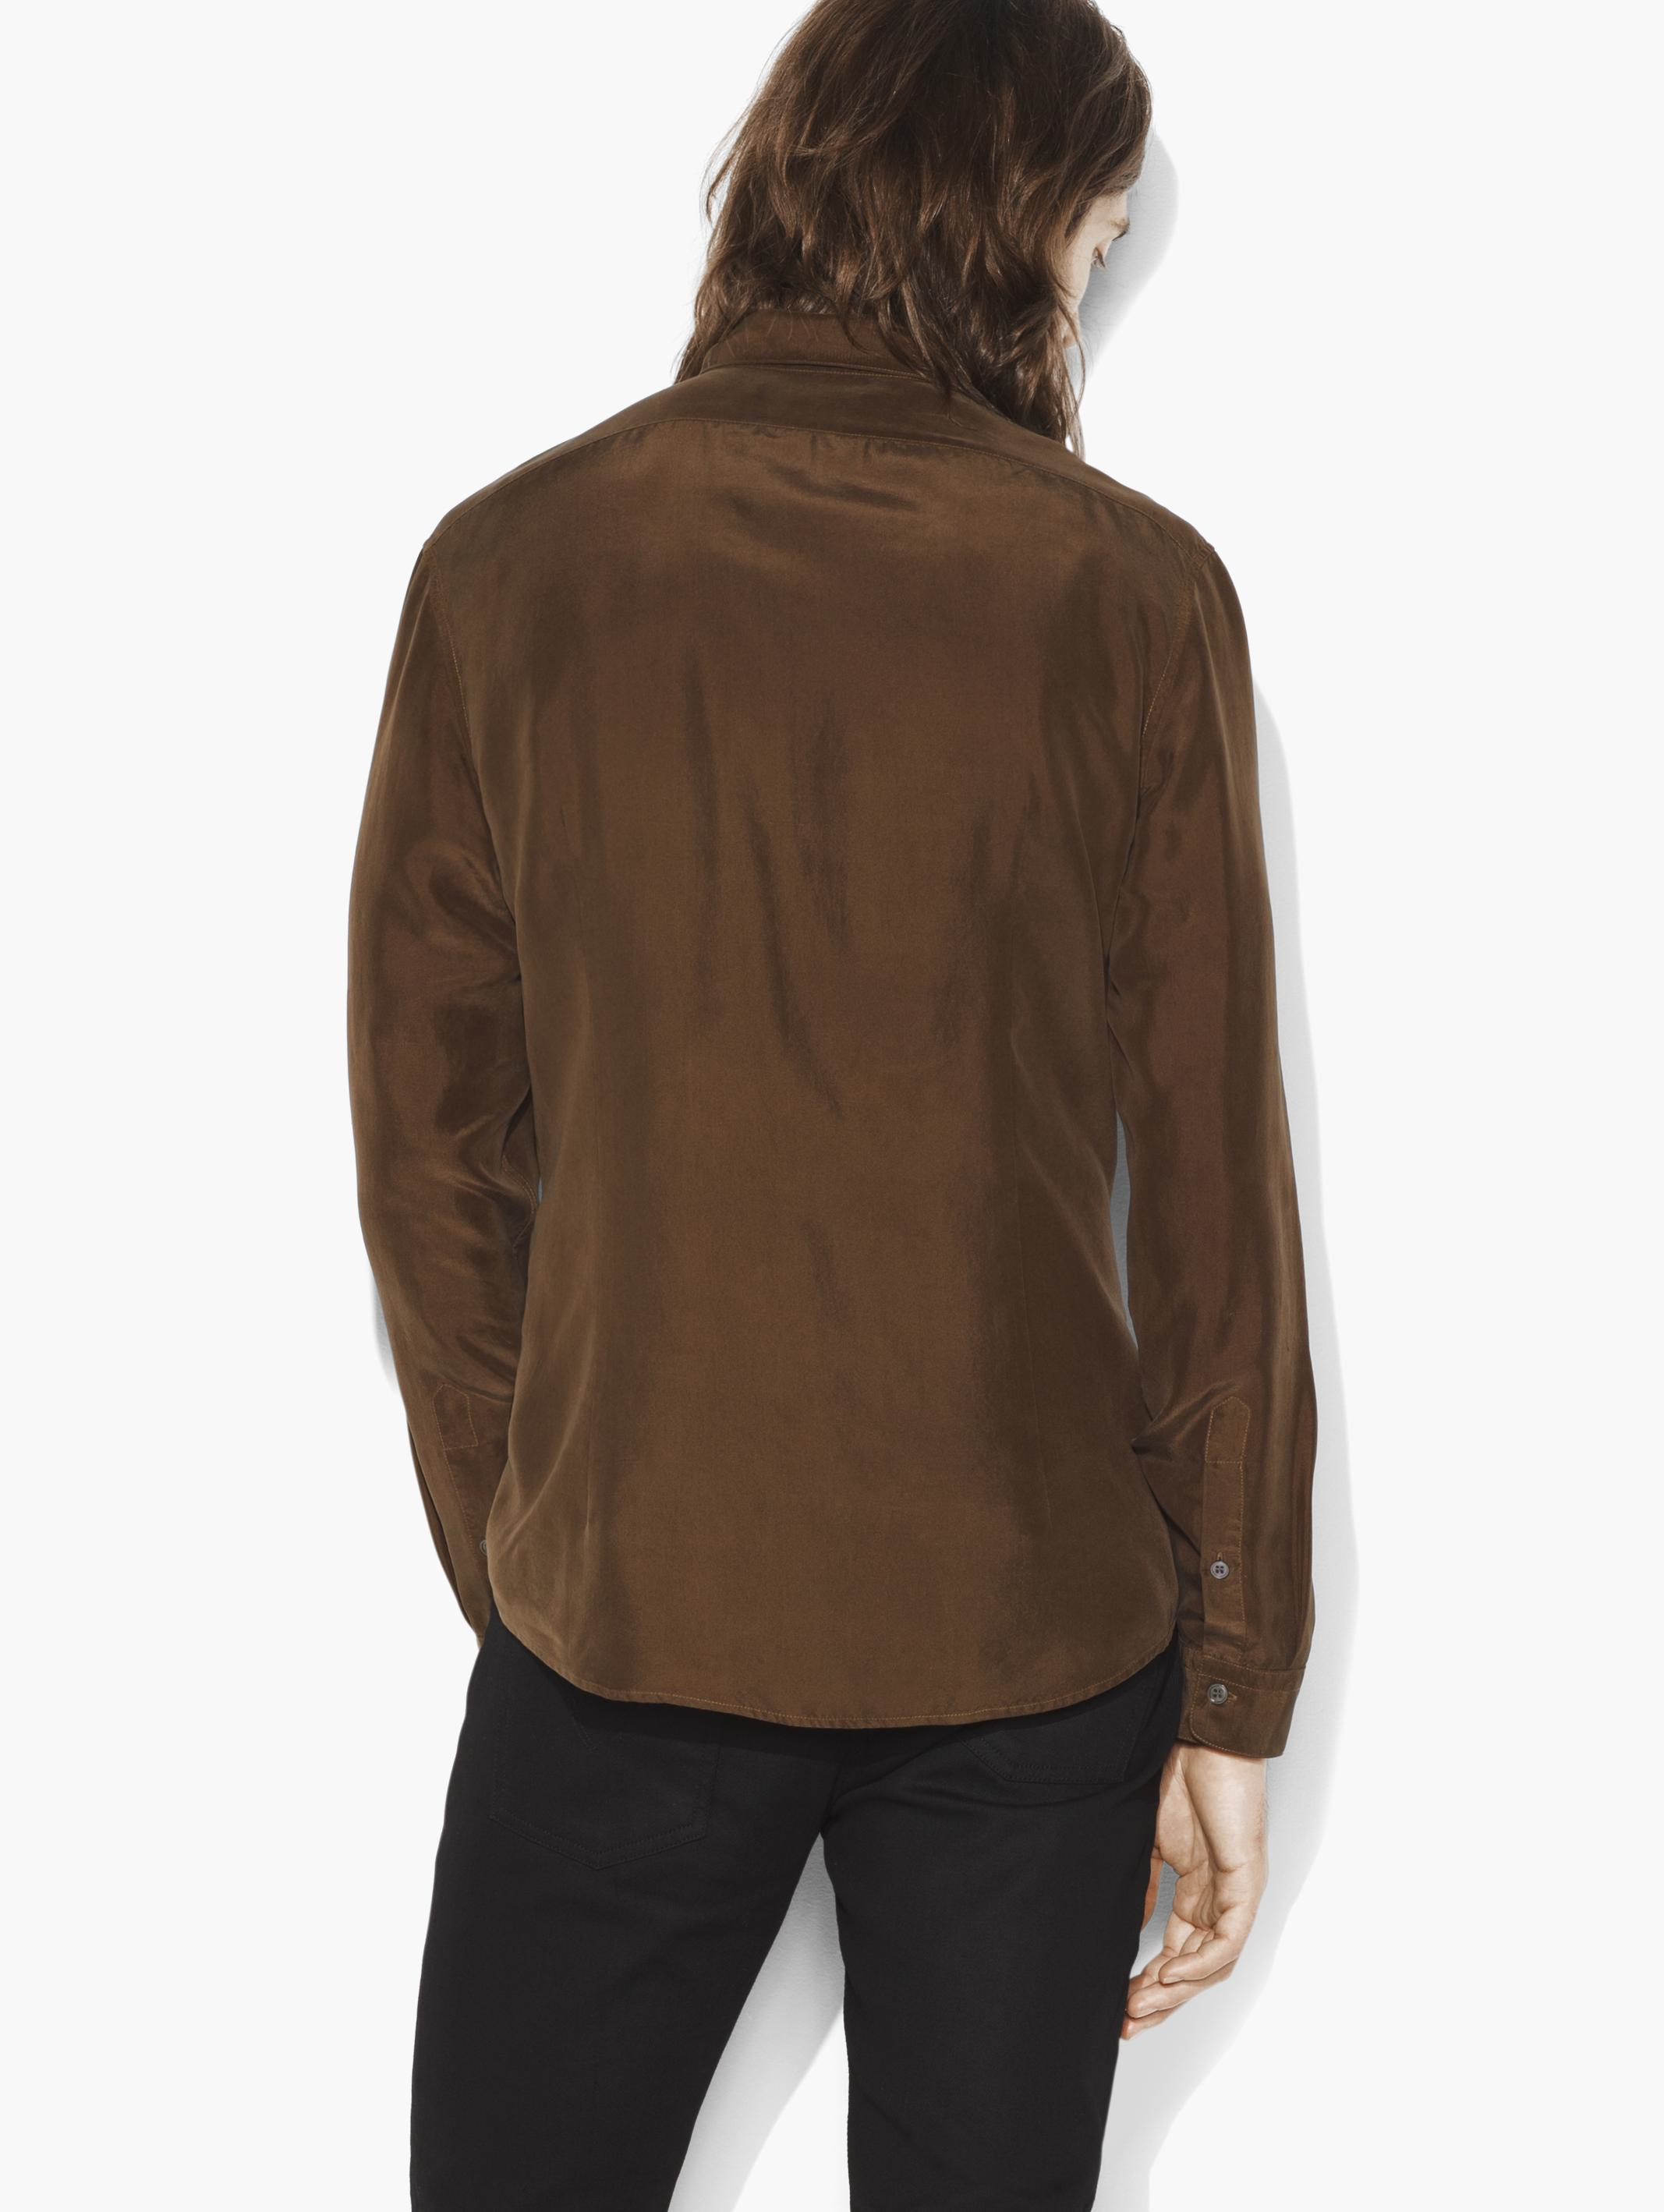 John Varvatos Silk Military Shirt in Copper (Brown) for Men